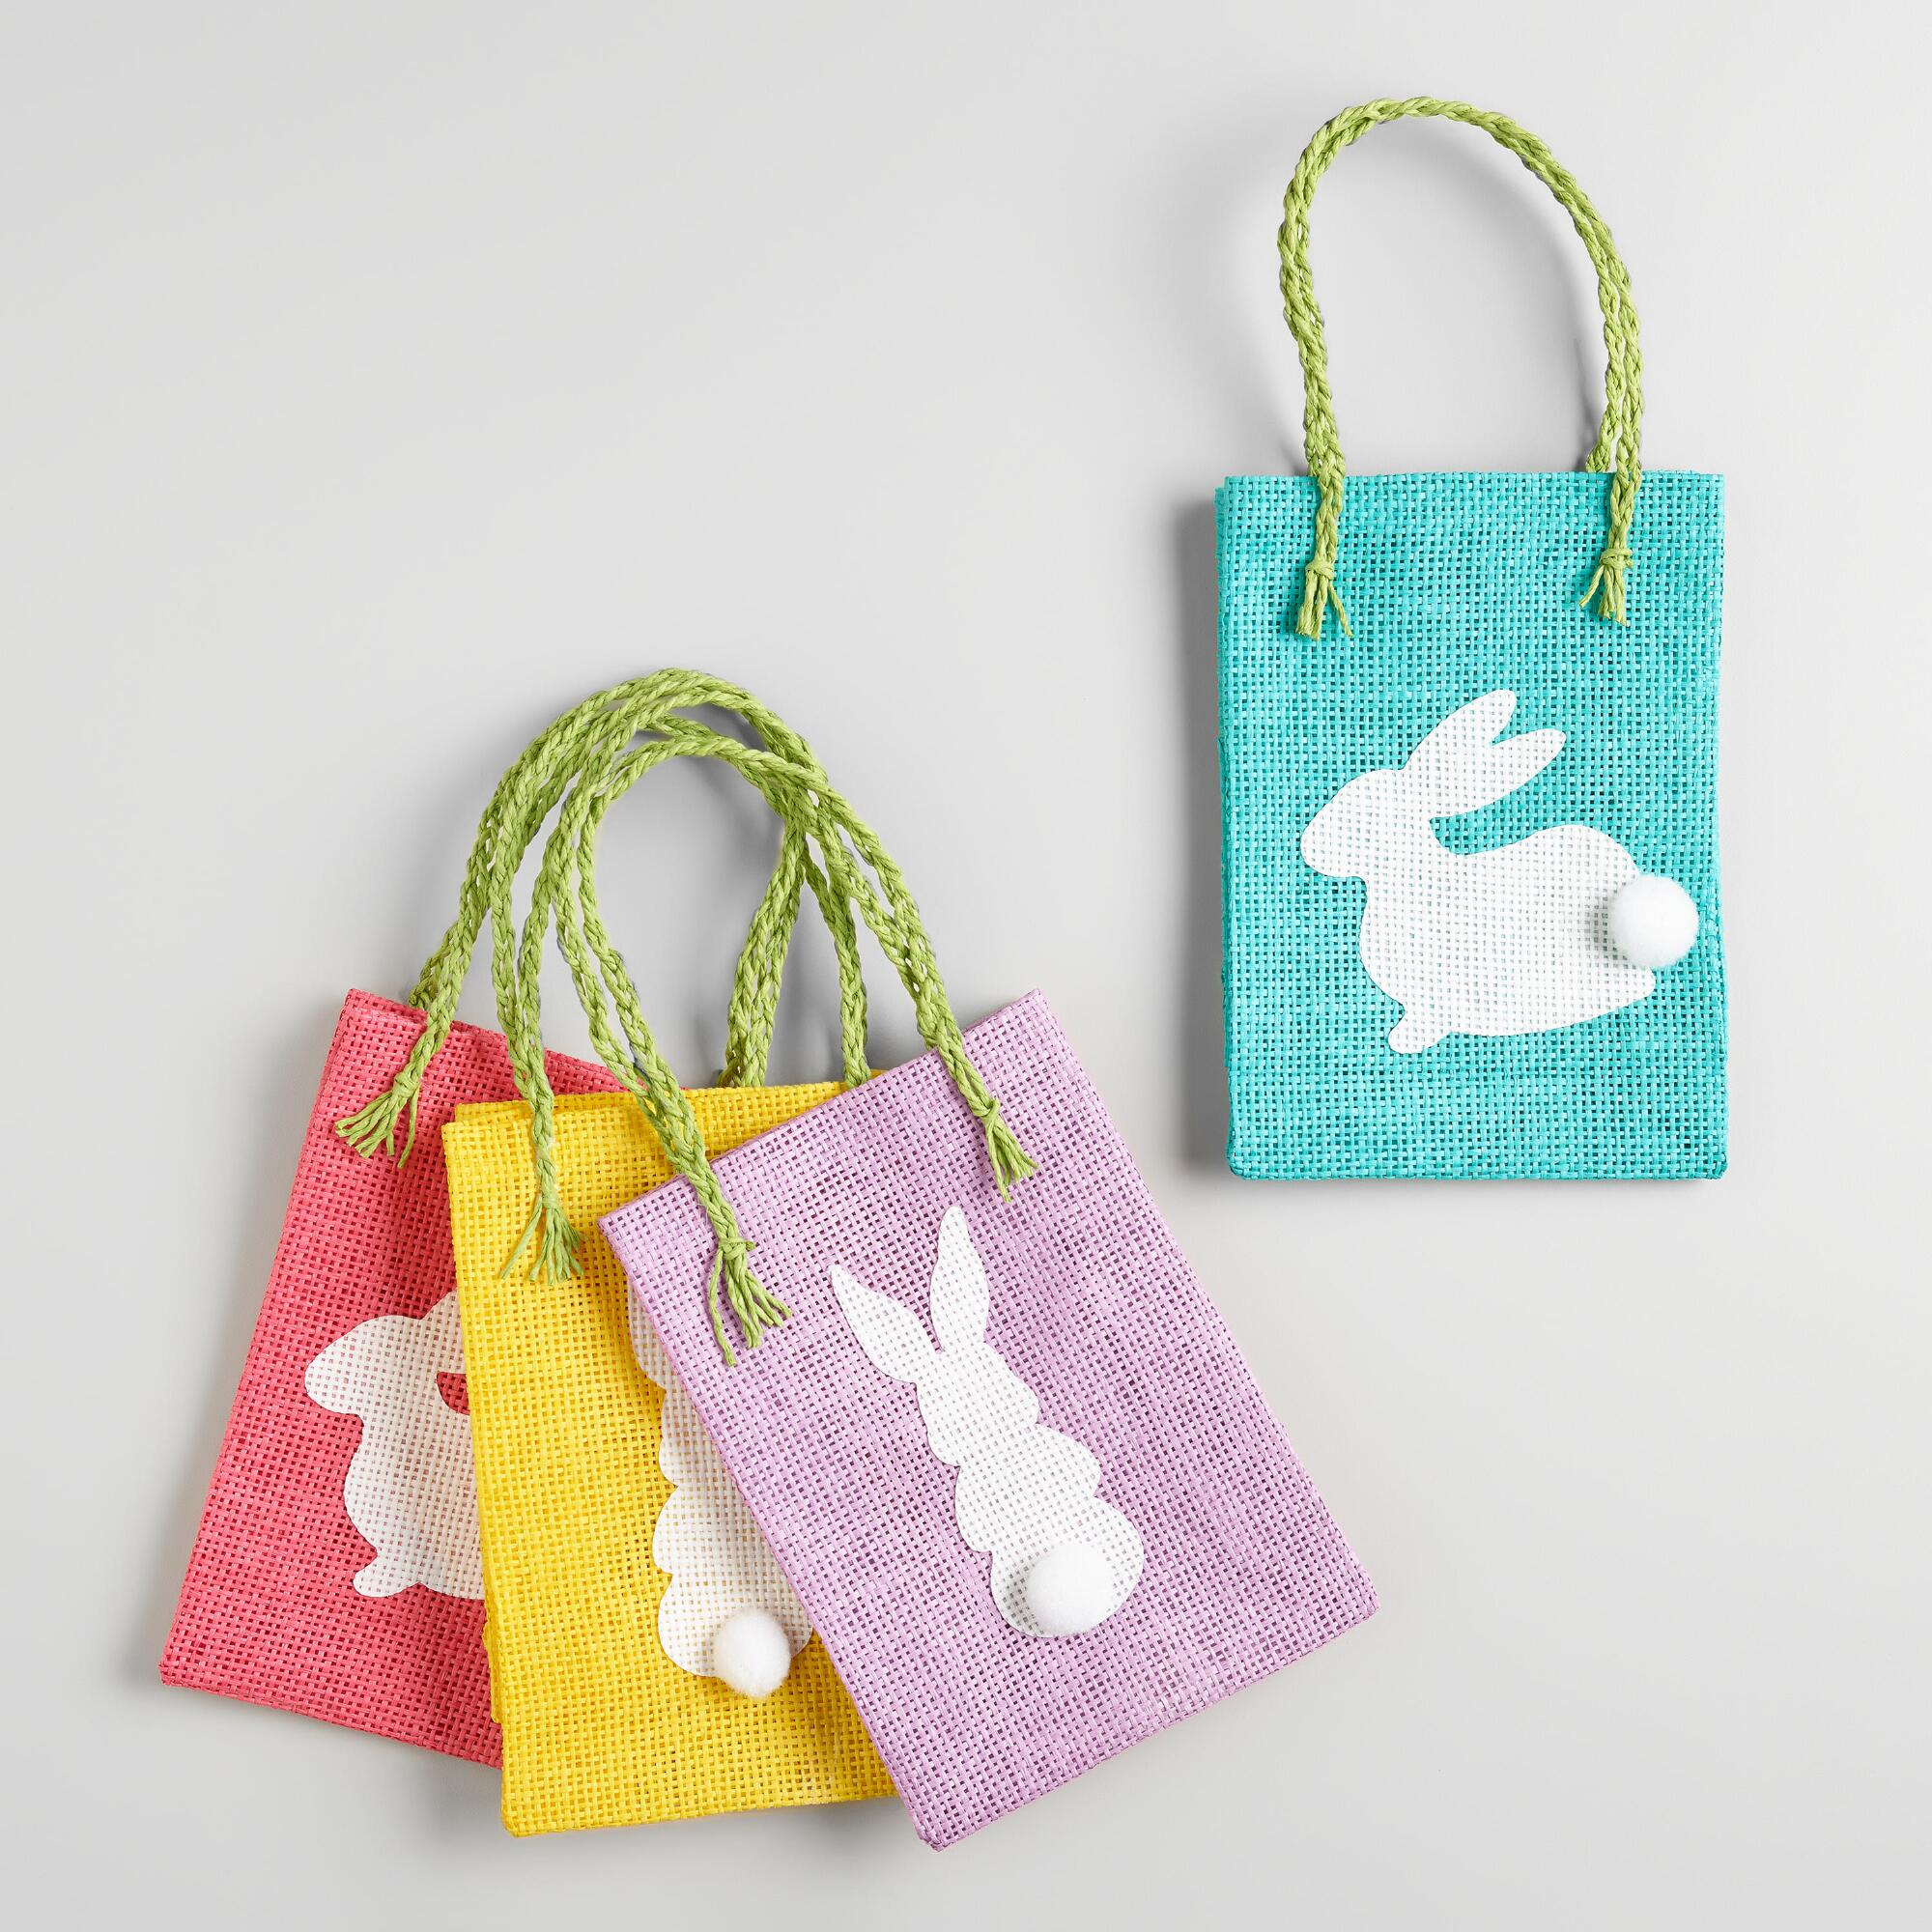 Woven Bunny Easter Gift  Bags Set of 4 by World Market